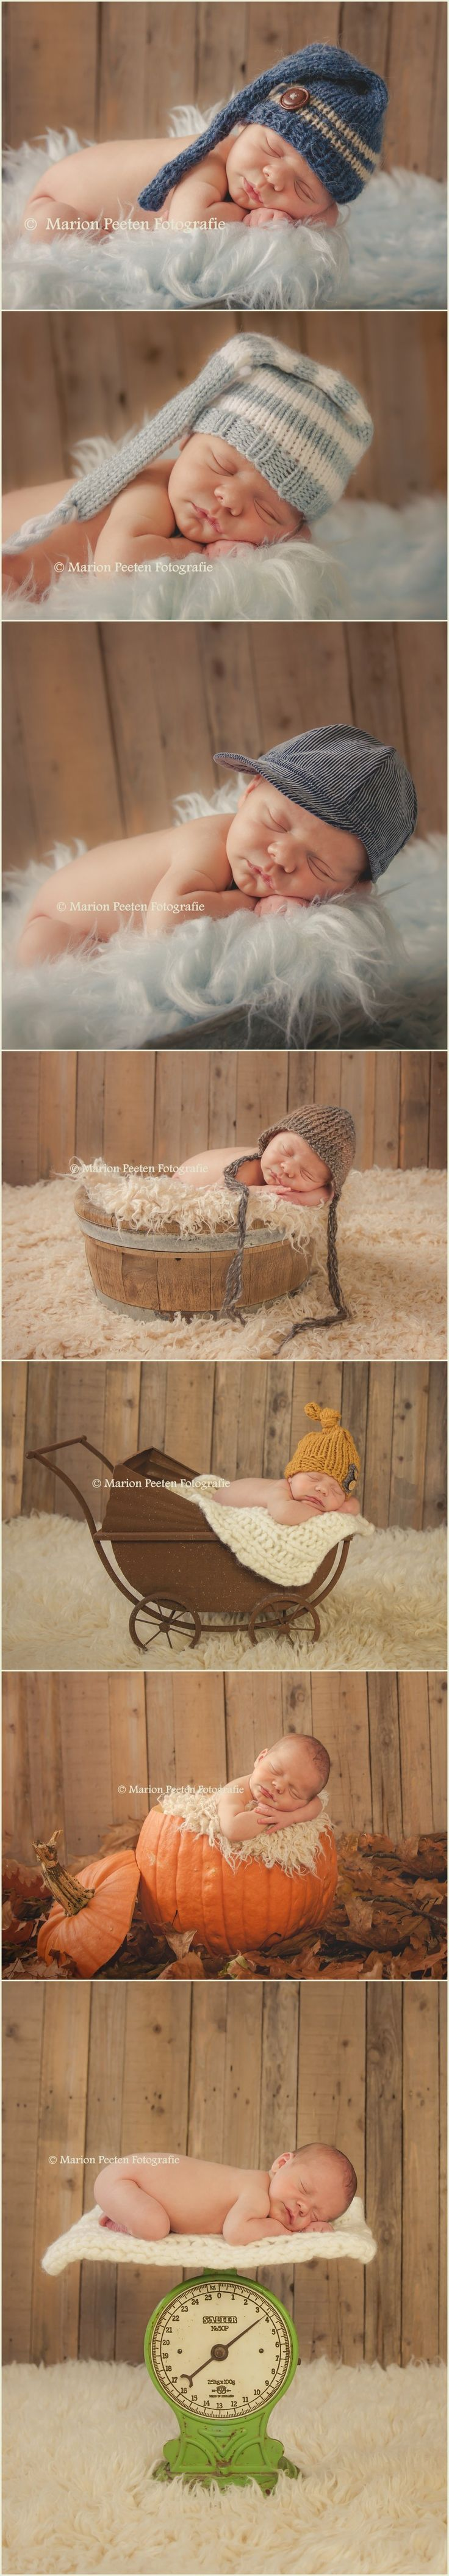 newborn photography, newborn fotografie